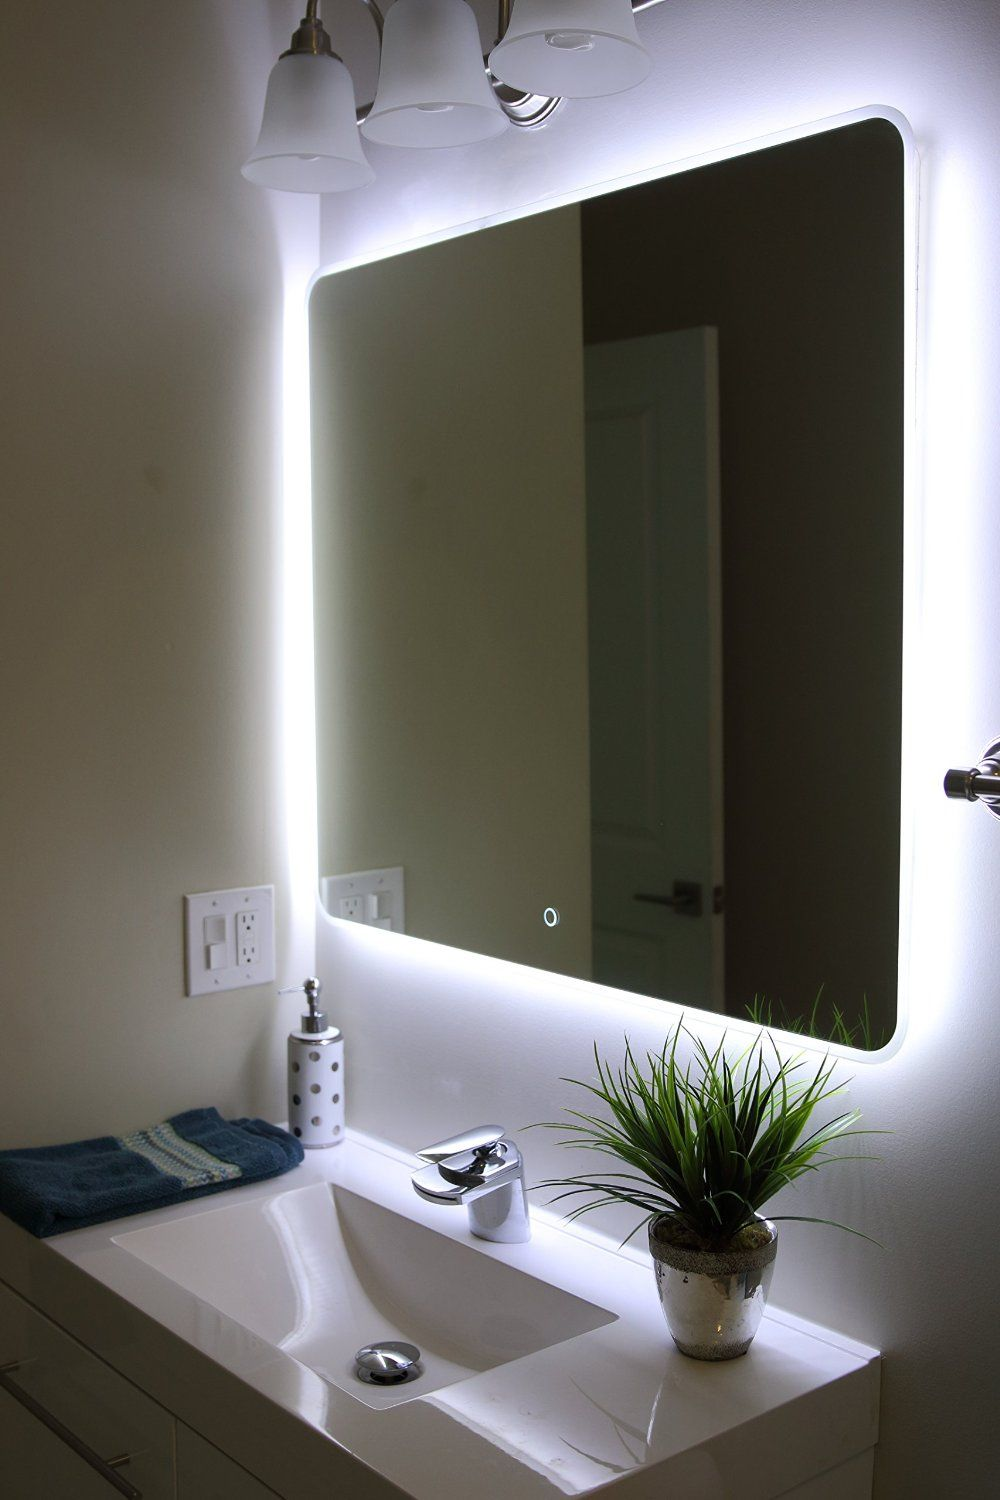 Bathroom Vanities Za windbay backlit led light bathroom vanity sink mirror. illuminated